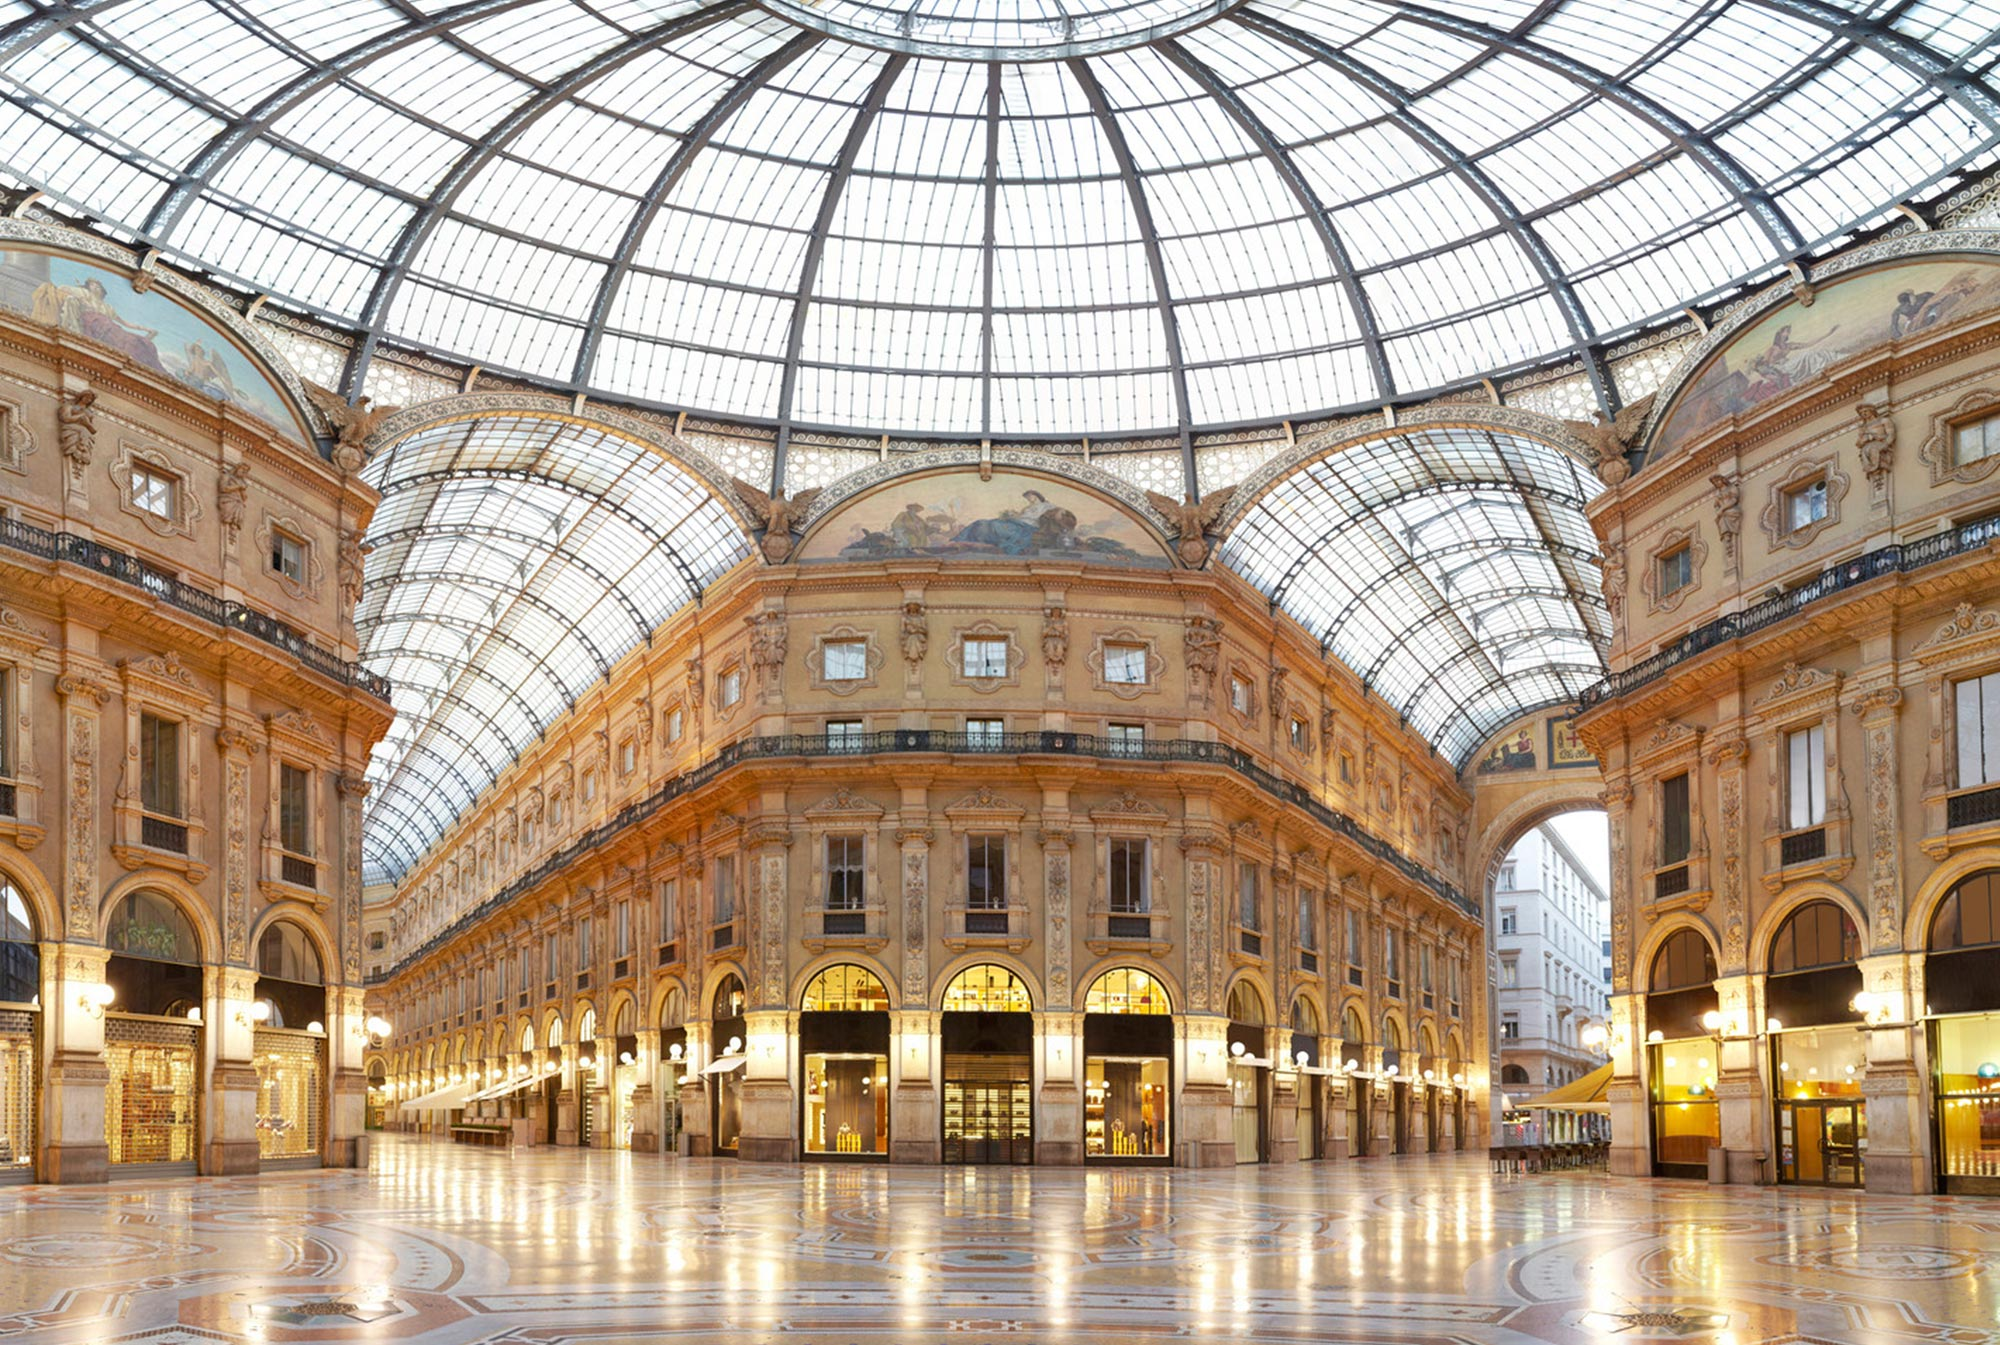 Explore-Italy-Attraction-Galleria-Vittorio Emanuele-in-Milan